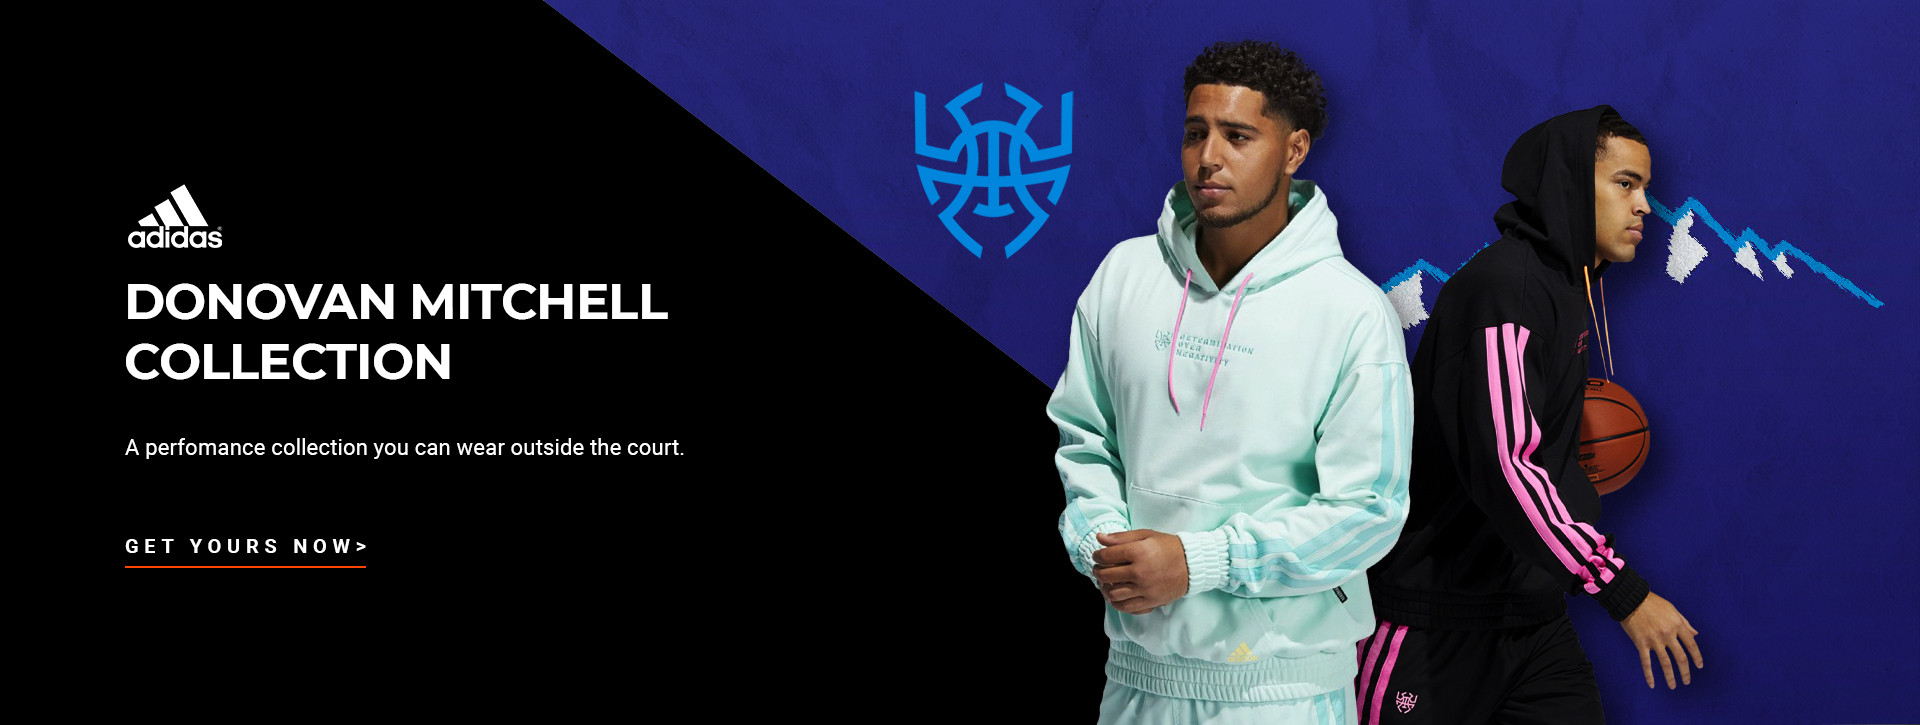 Donovan Mitchell Collection